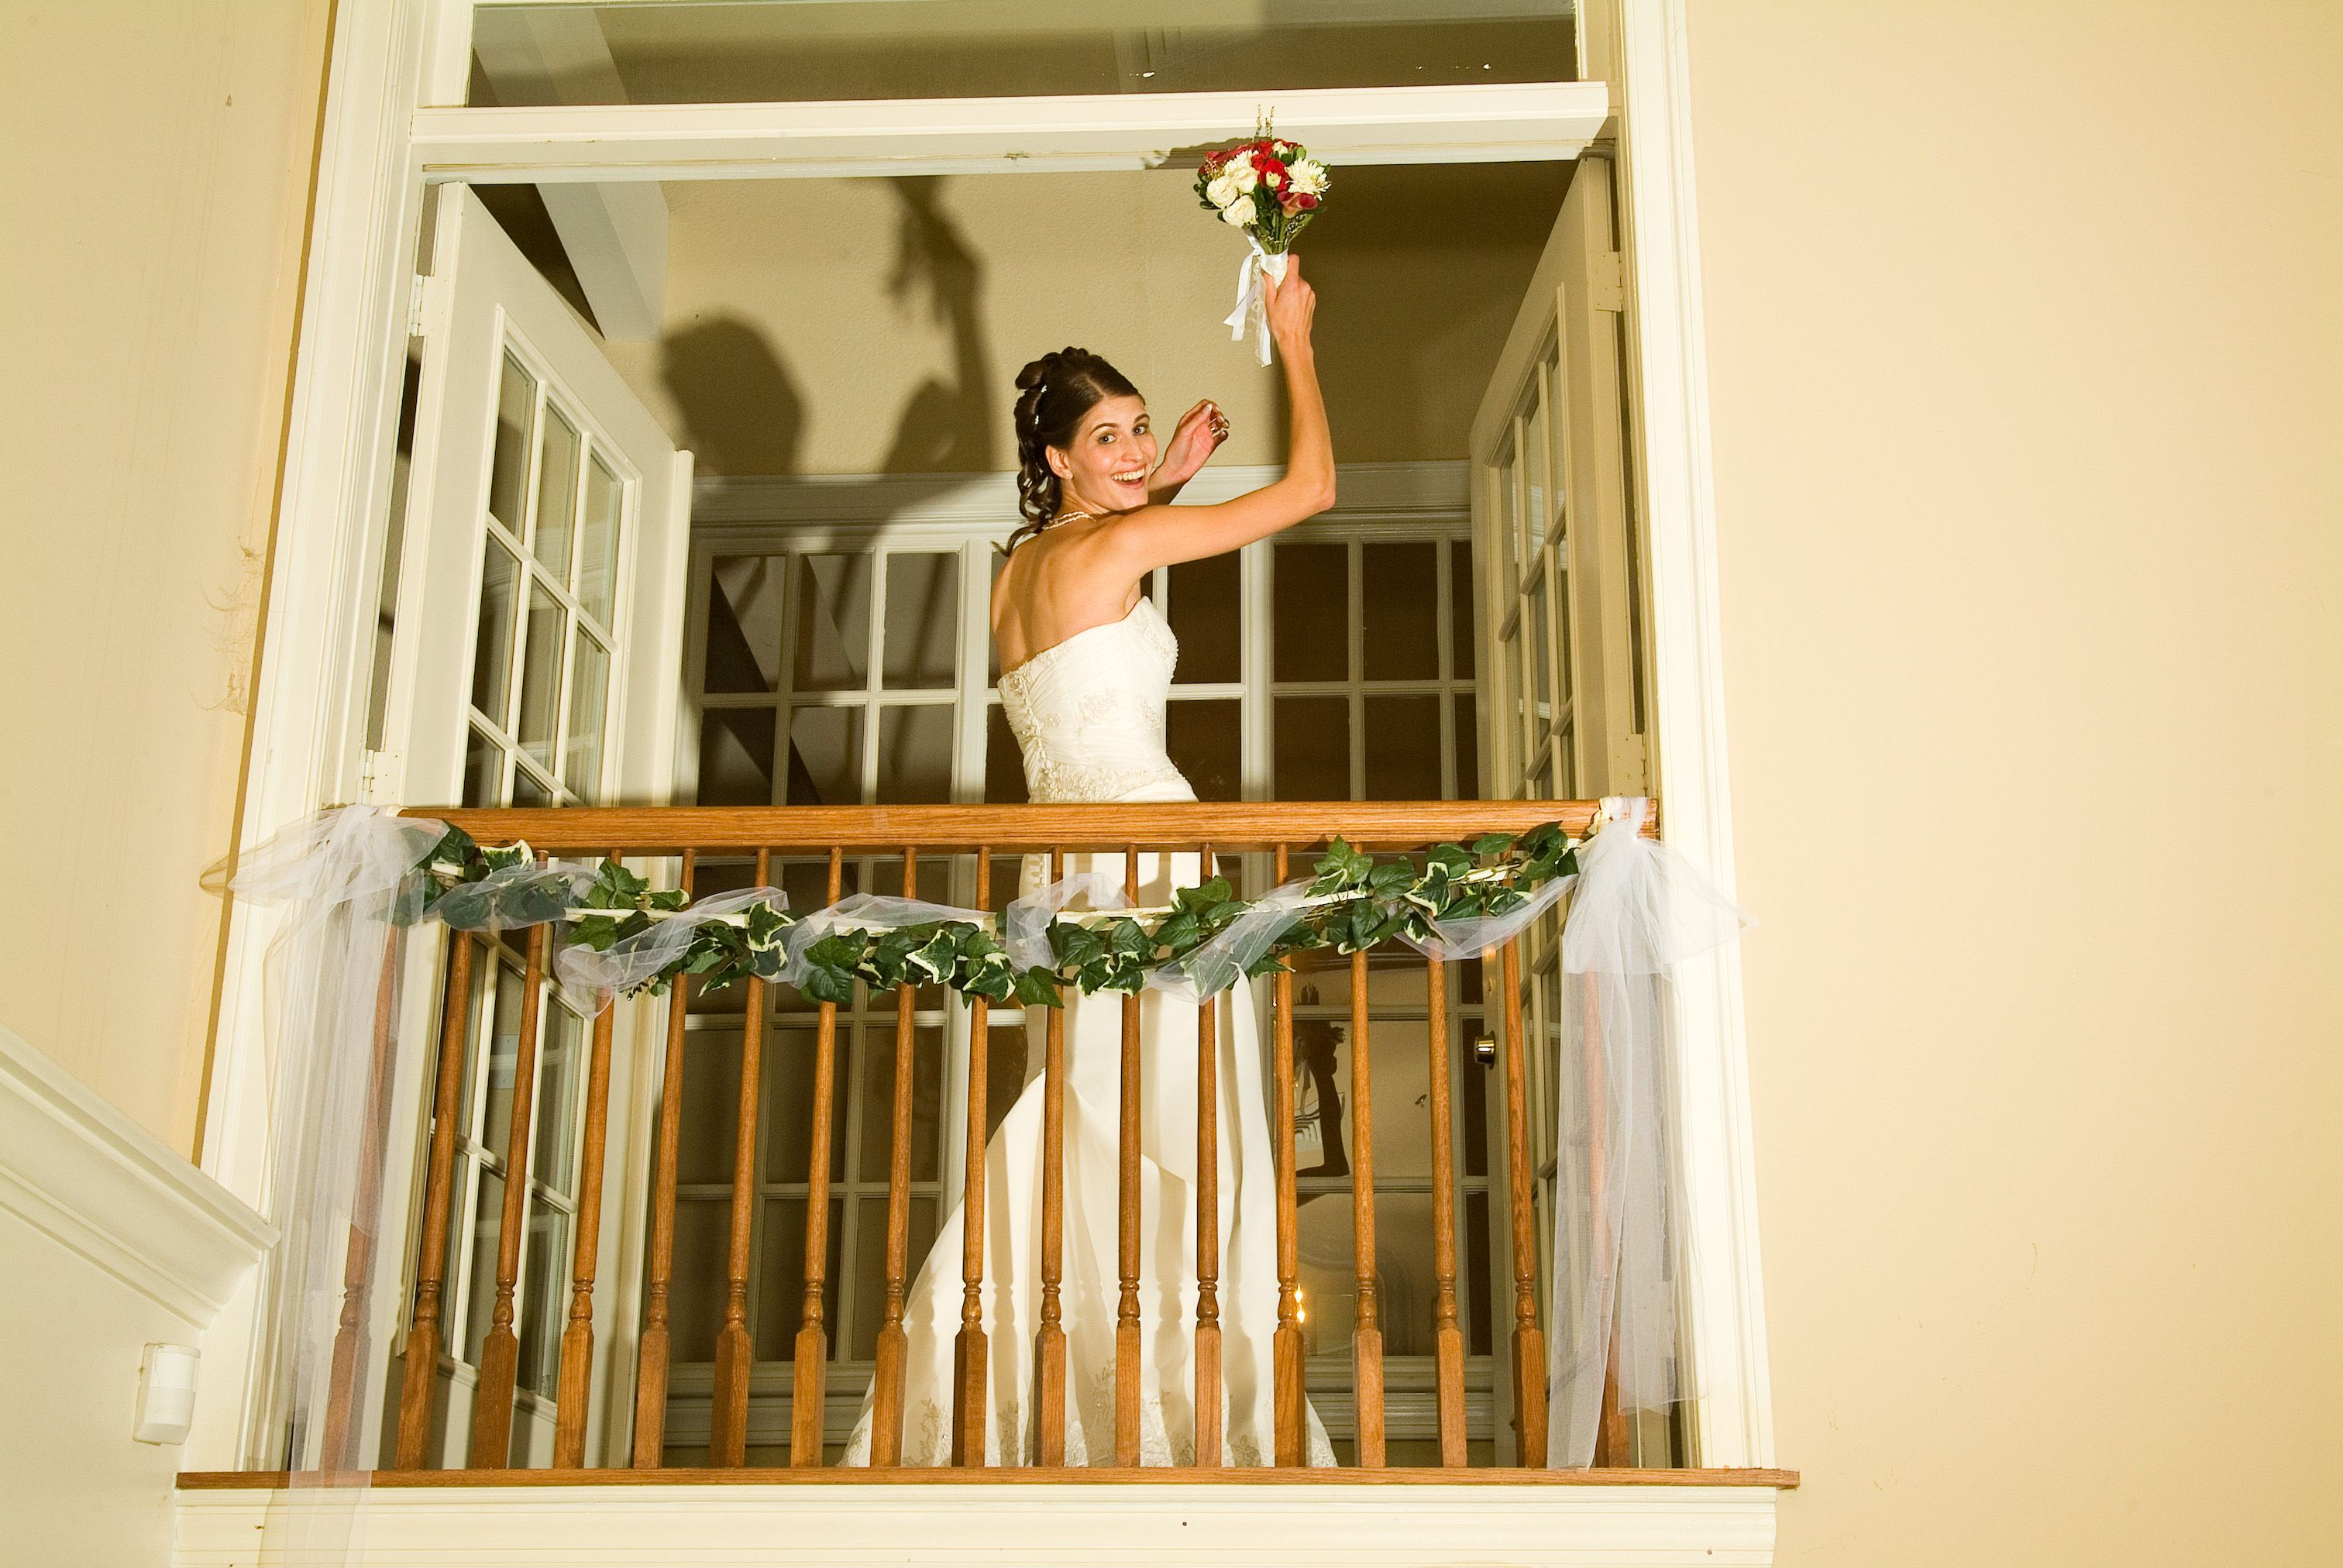 Bride throwing her bouquet from our Bridal Suite Balcony doors! These doors overlook the Ball Room!